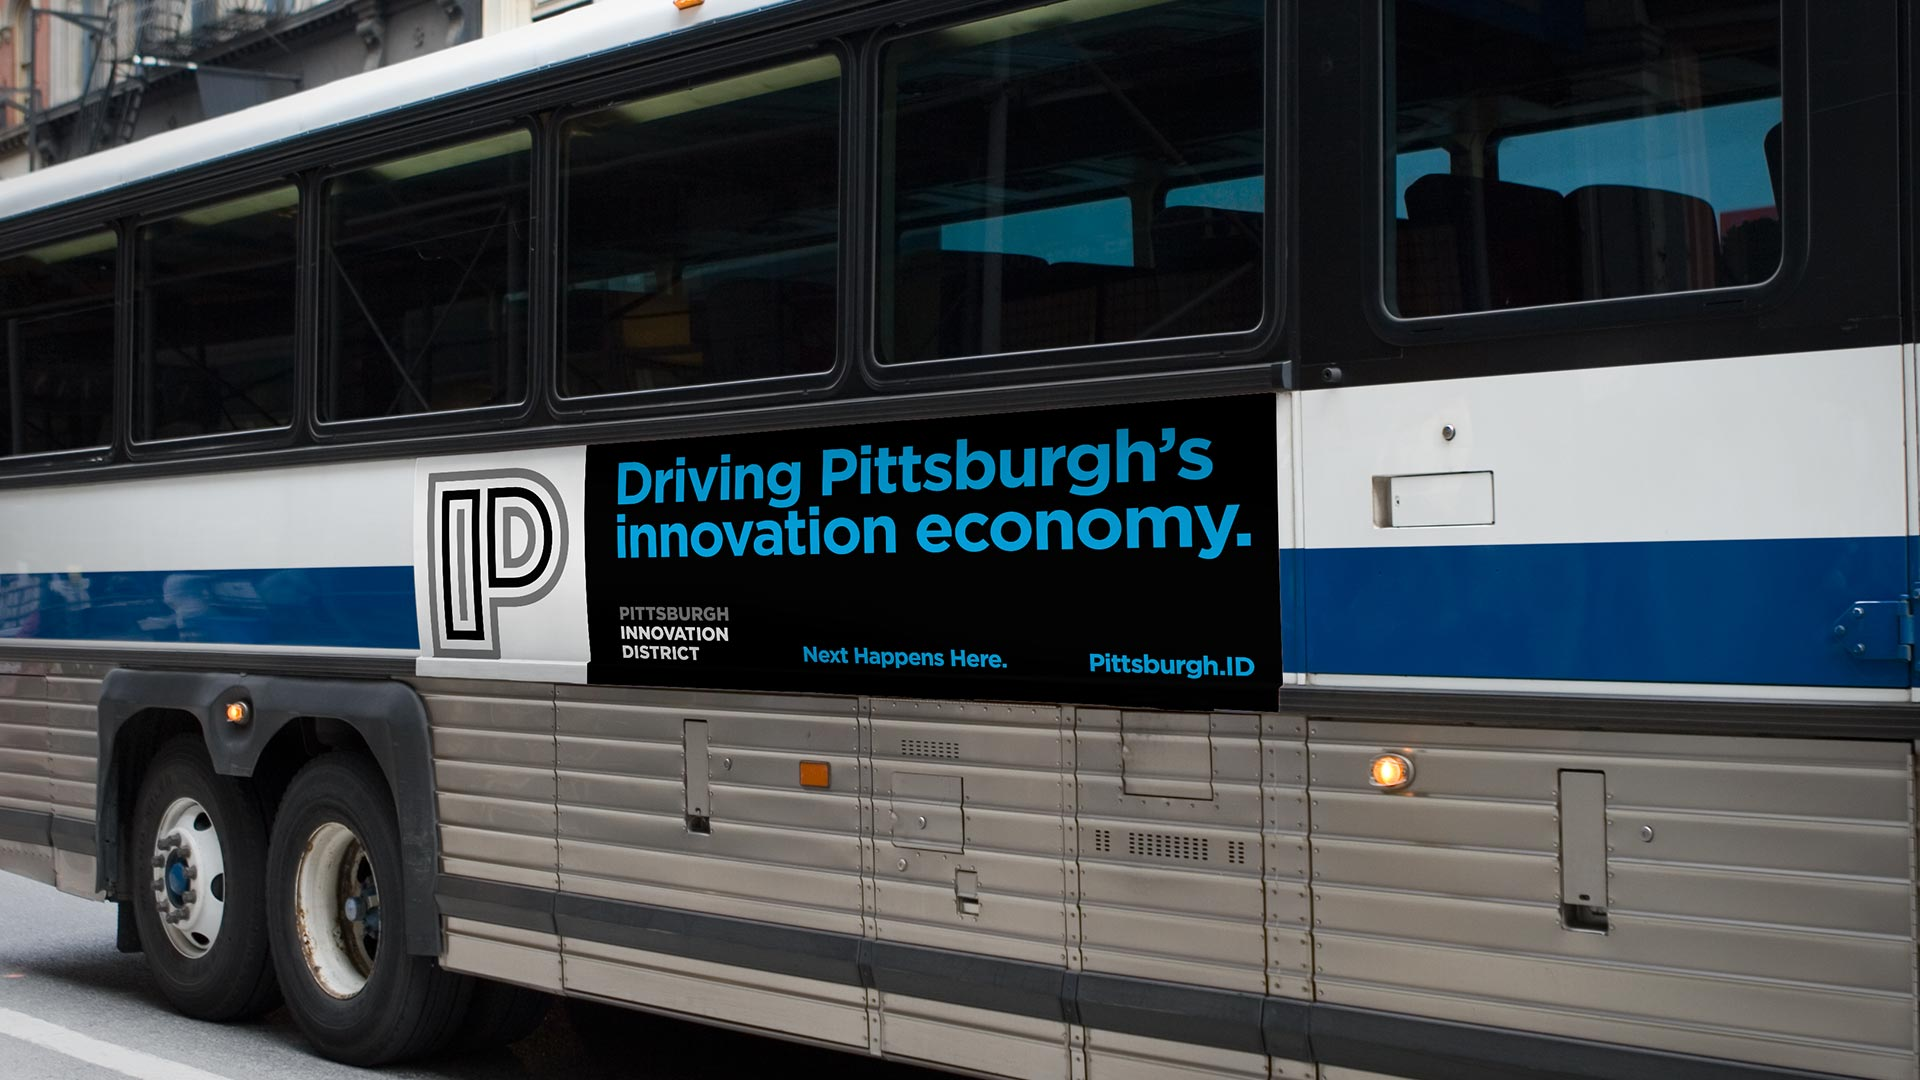 Pghid bus%20ad